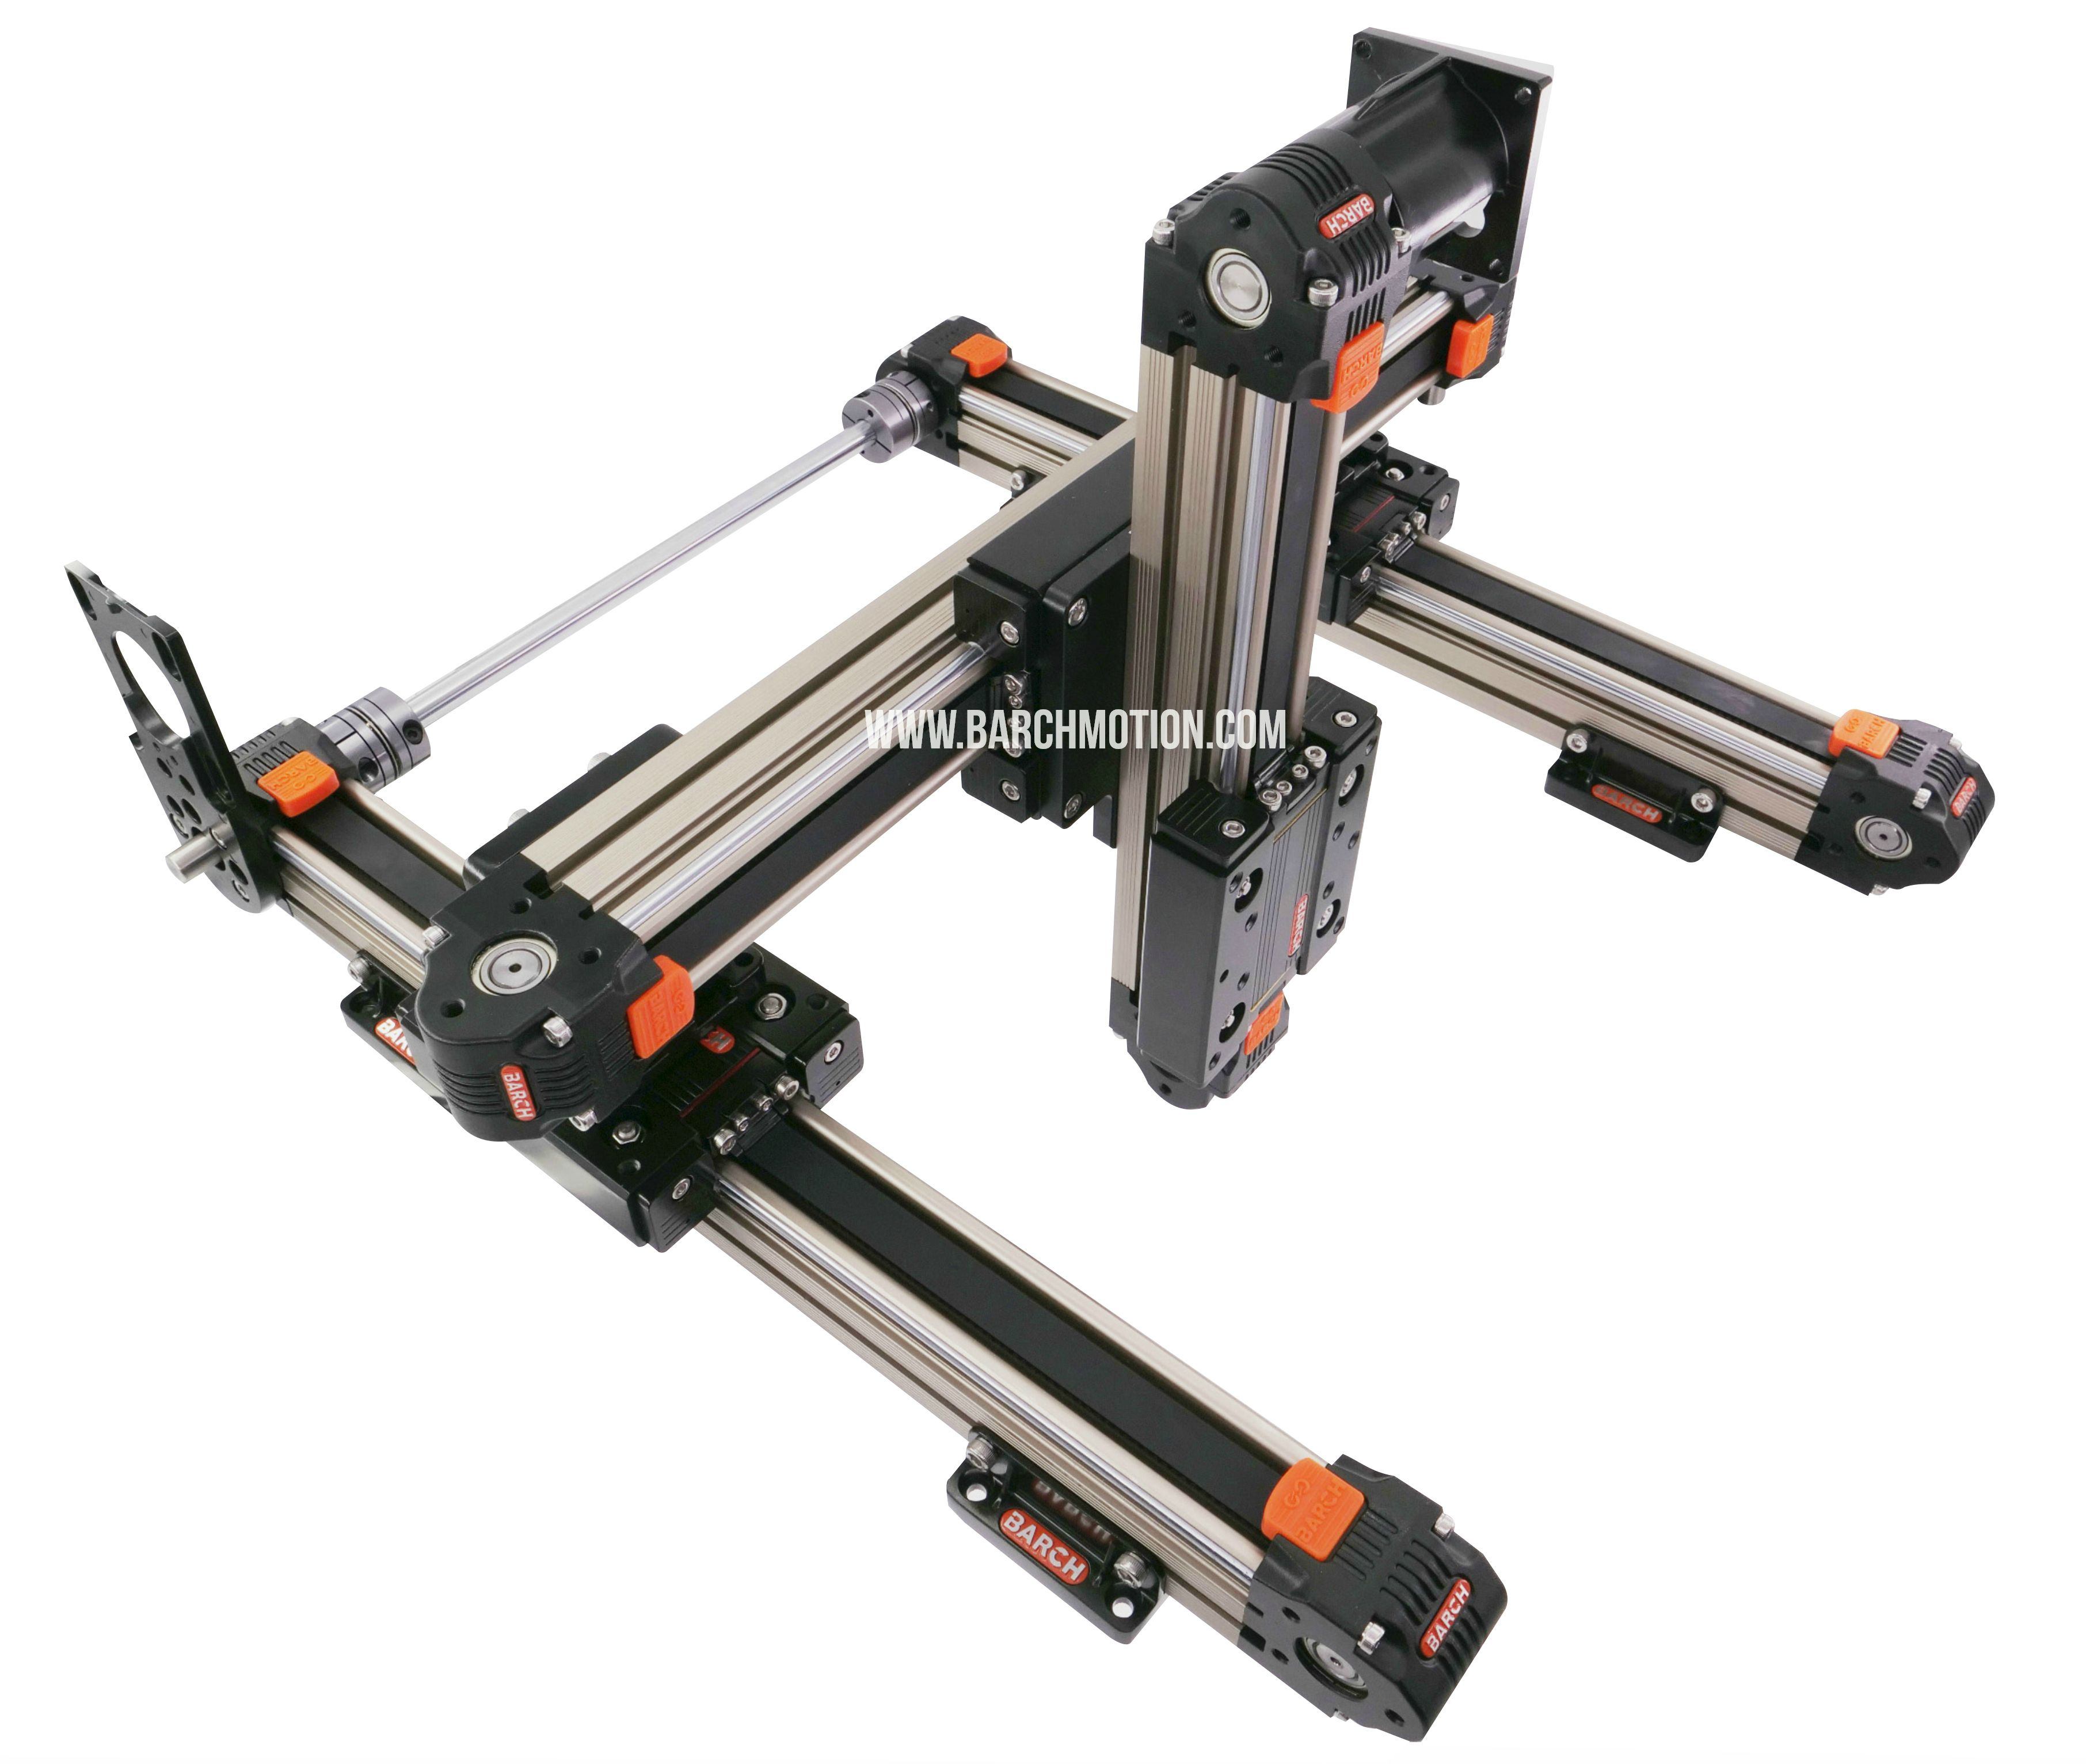 Belt thooted linear actuator, X,Y,Z gantry system, linear guides for